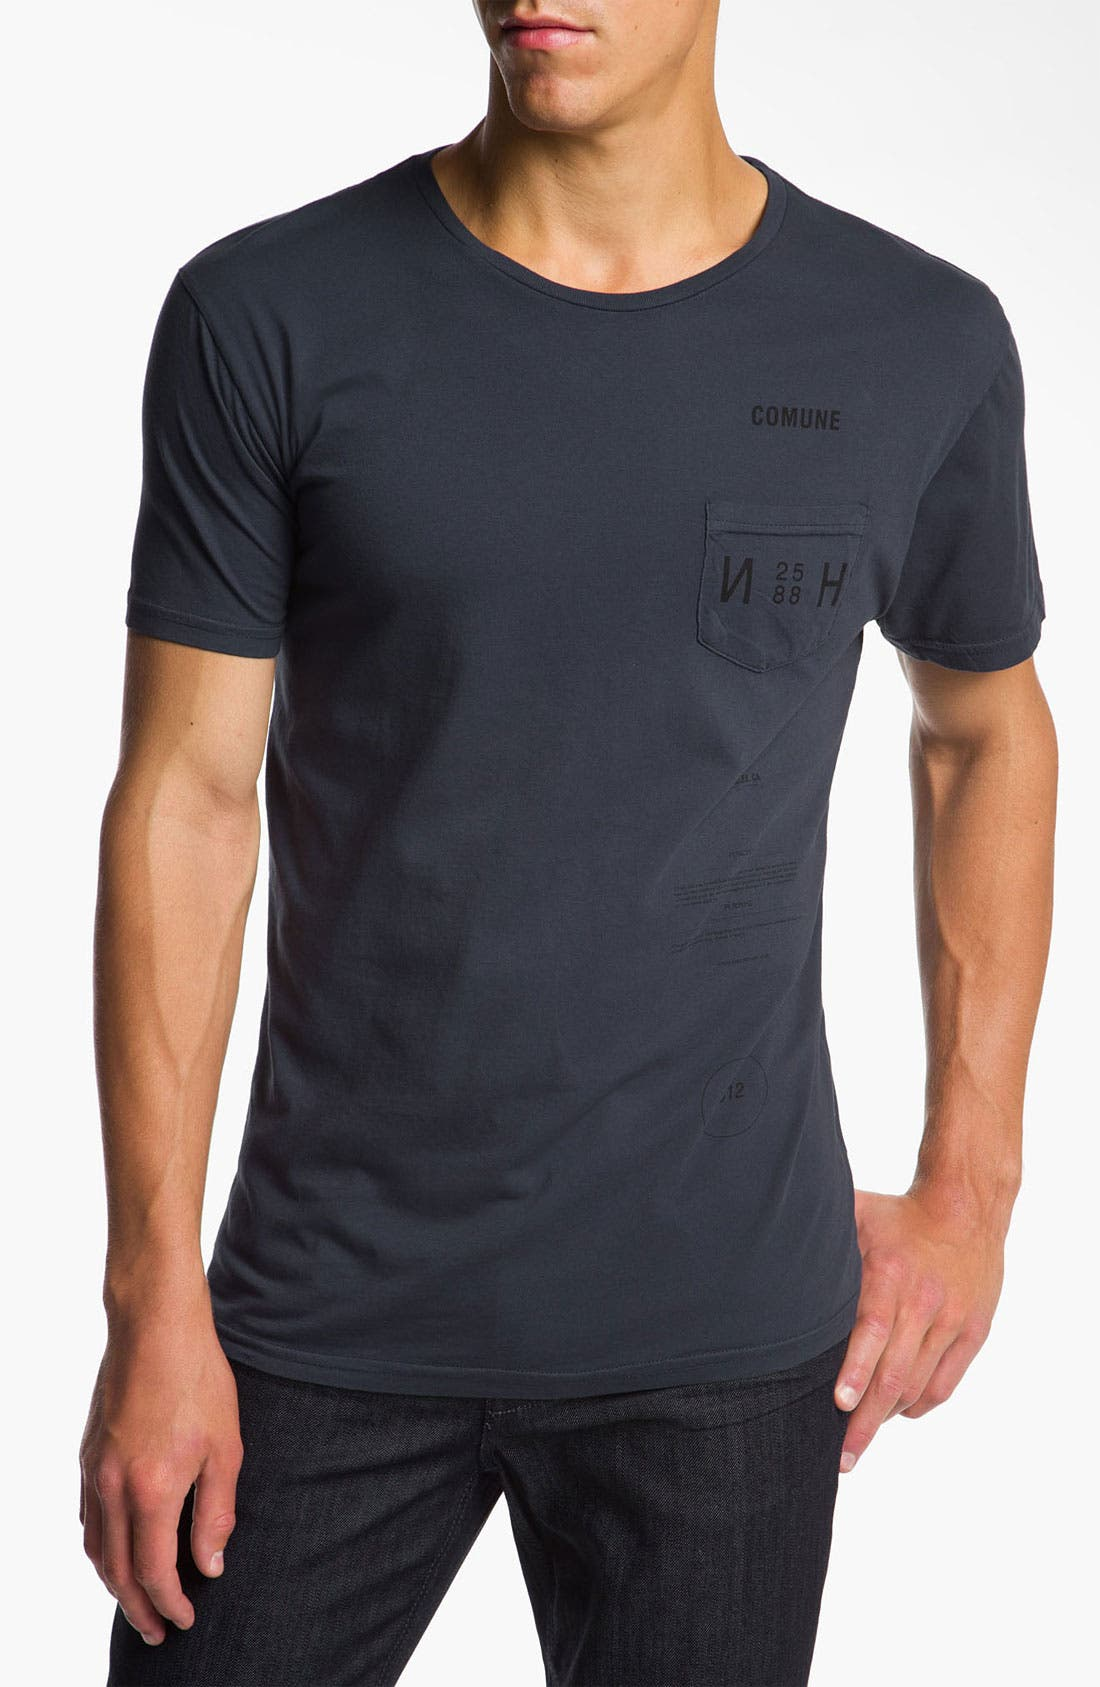 Alternate Image 1 Selected - Comune 'N and H' Graphic T-Shirt